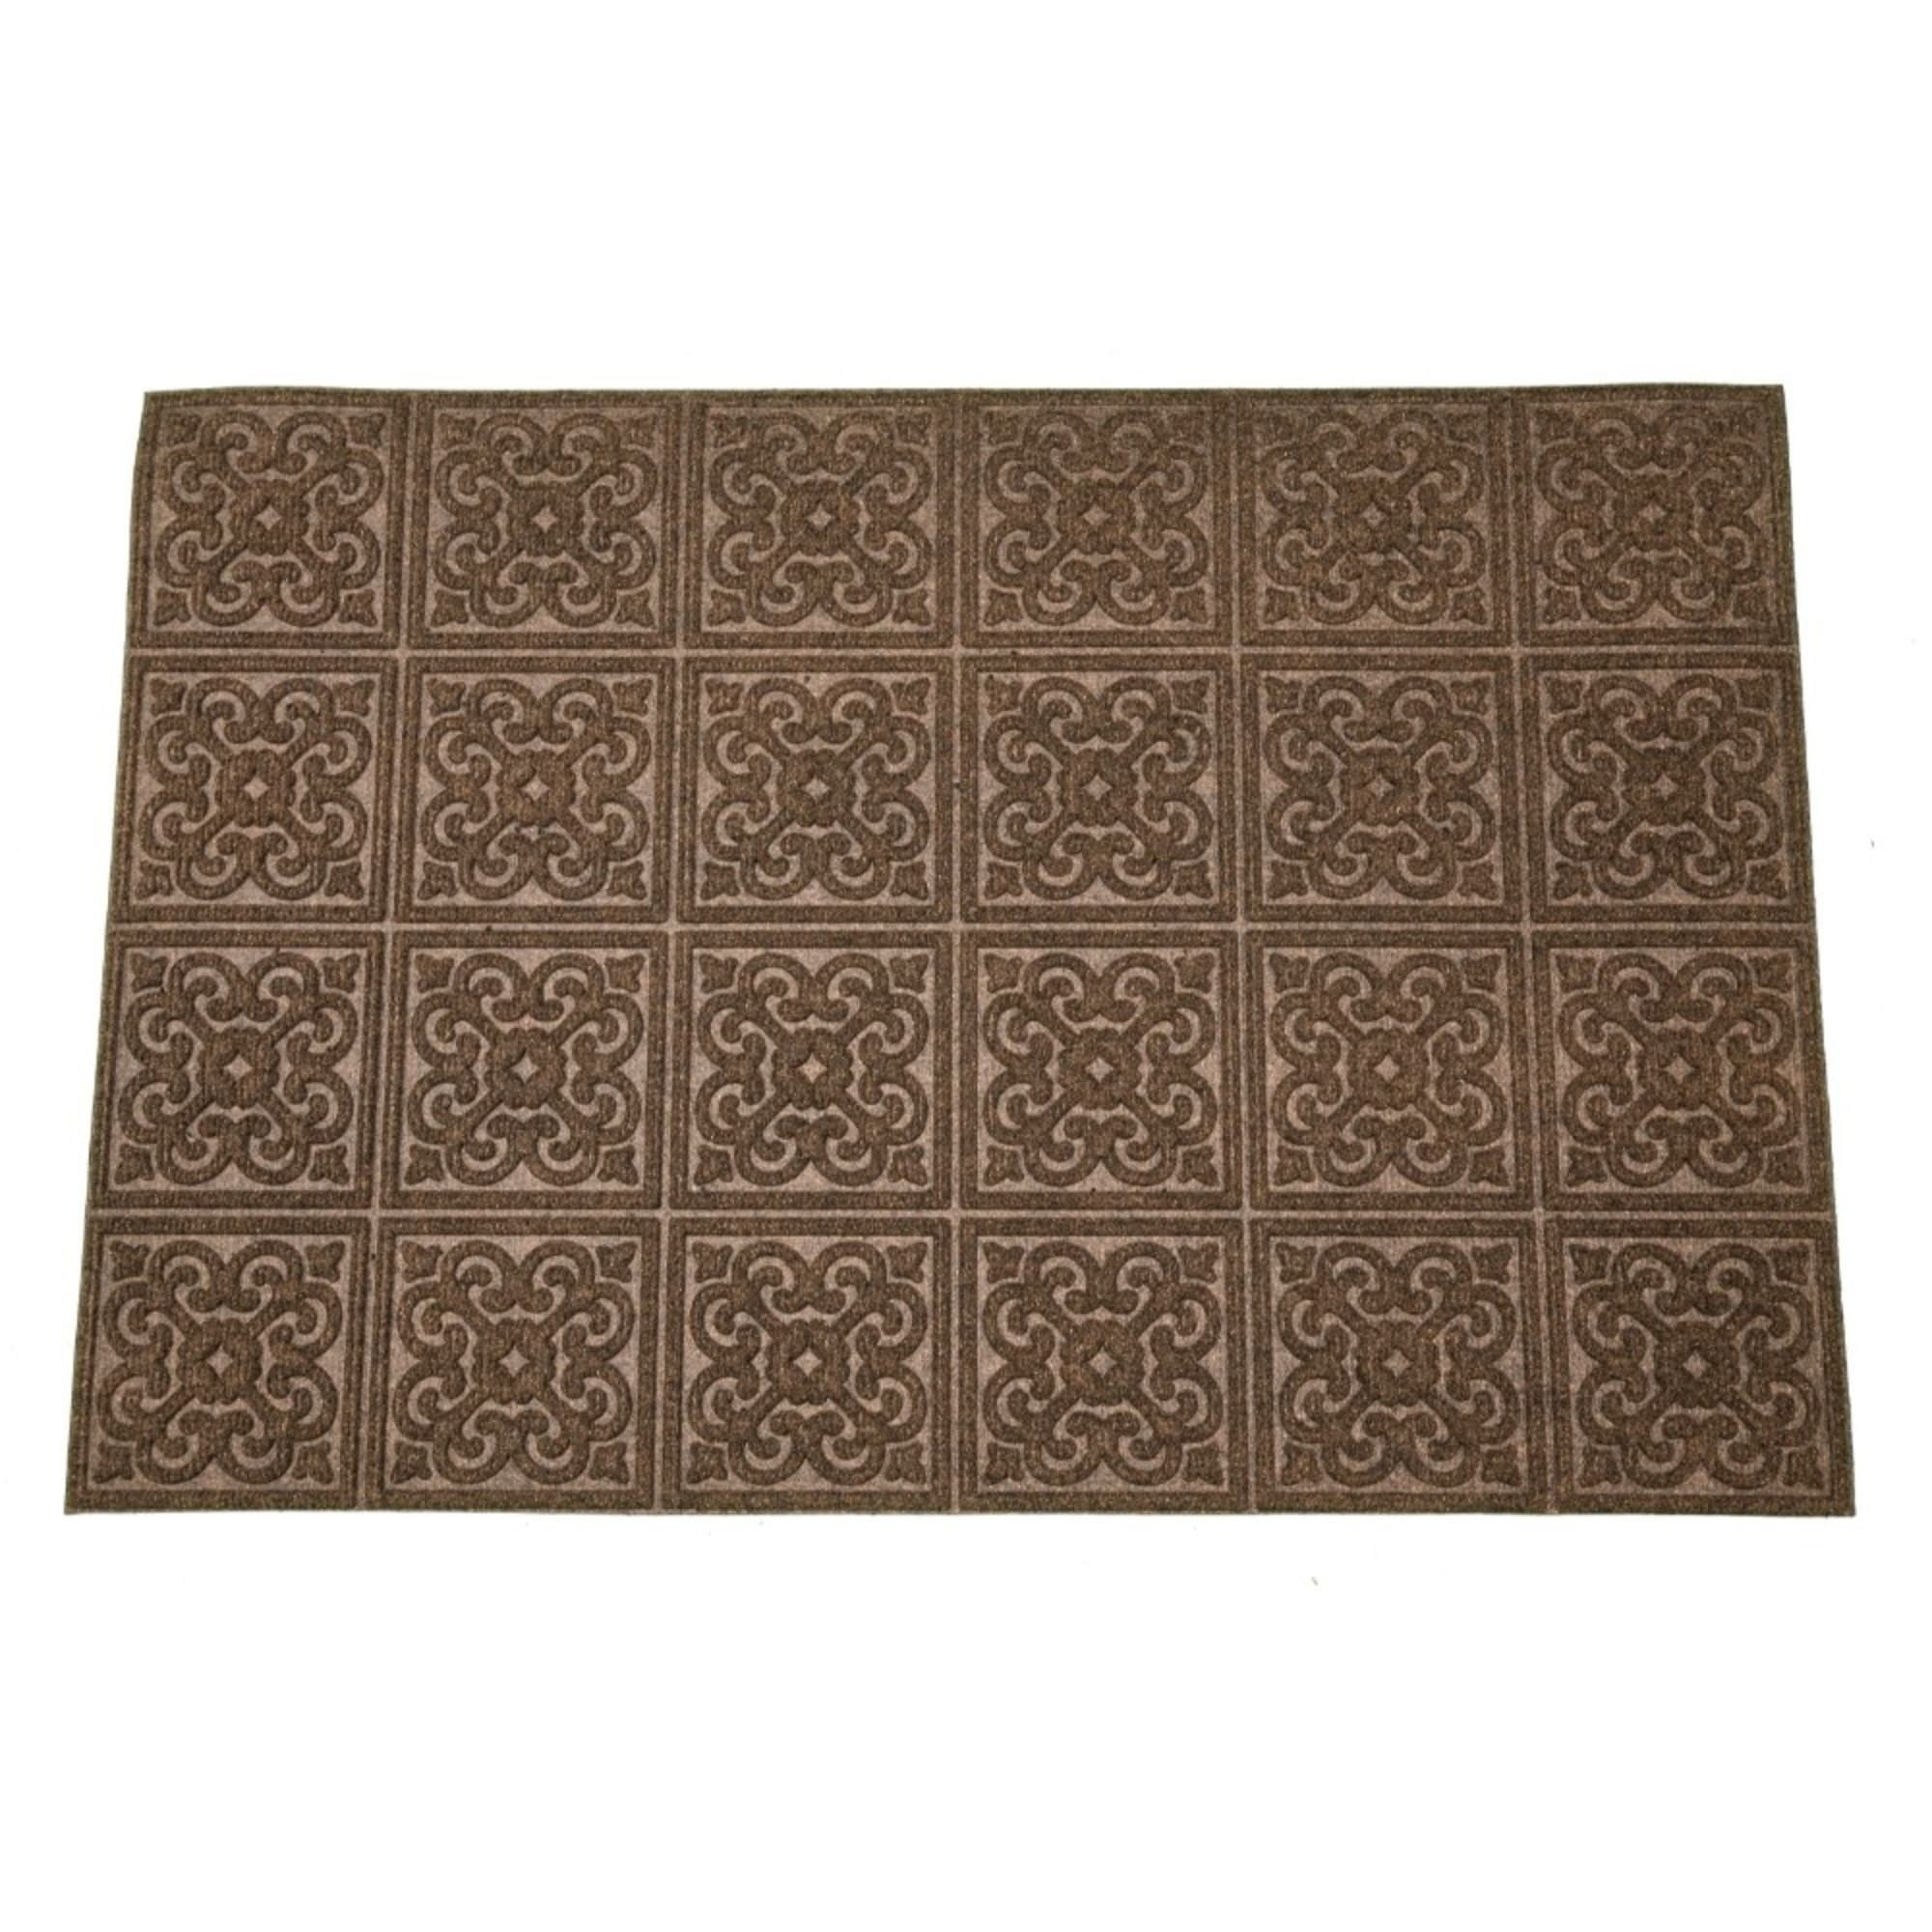 covered use mats camelot product commercial print spcamelot min screen indoor mat entrance outdoor sp